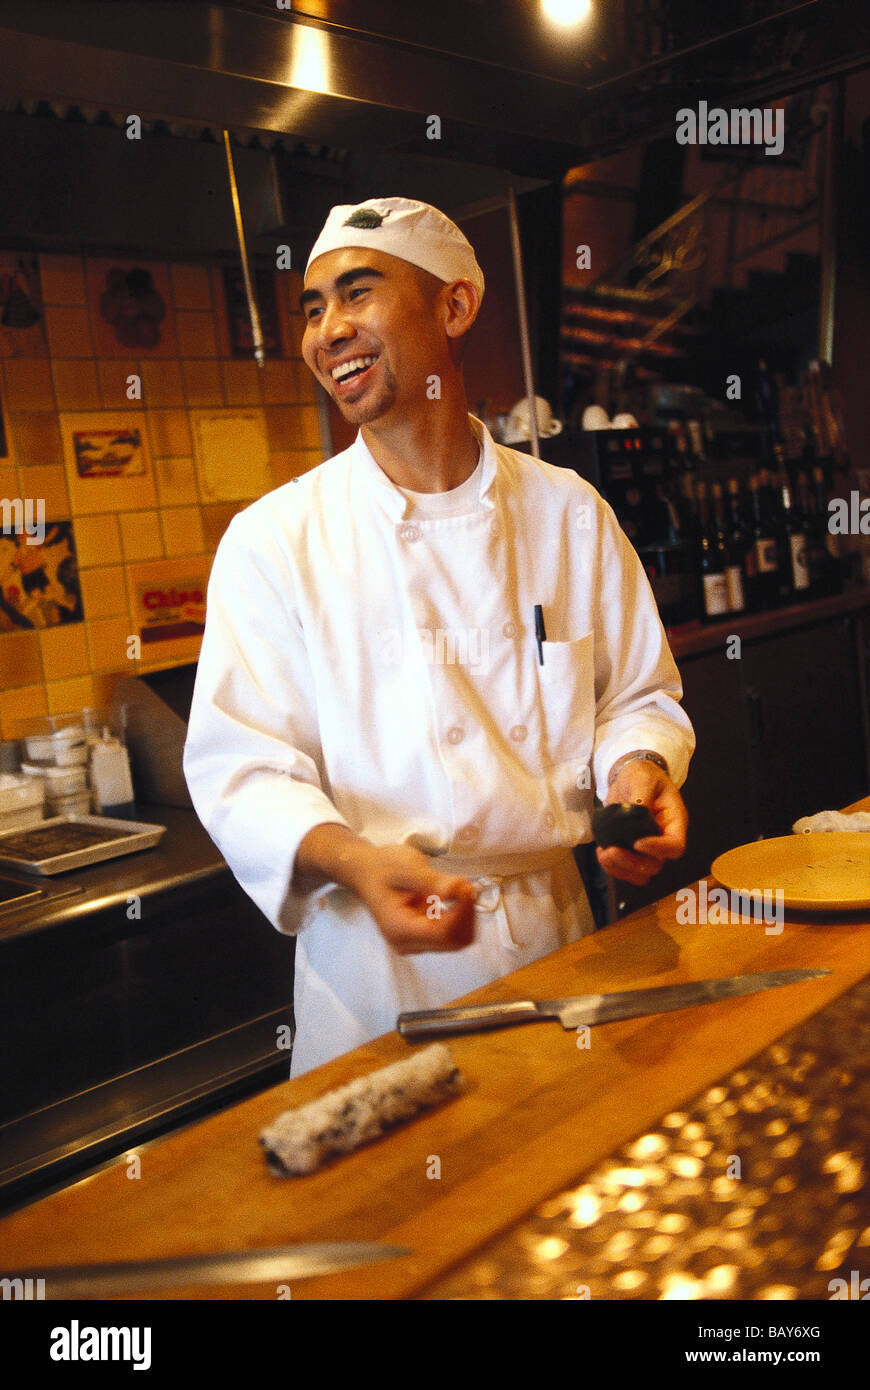 Laughing cook at the restaurant Oba Chine, Beverly Hills, Los Angeles, Kalifornien, USA - Stock Image